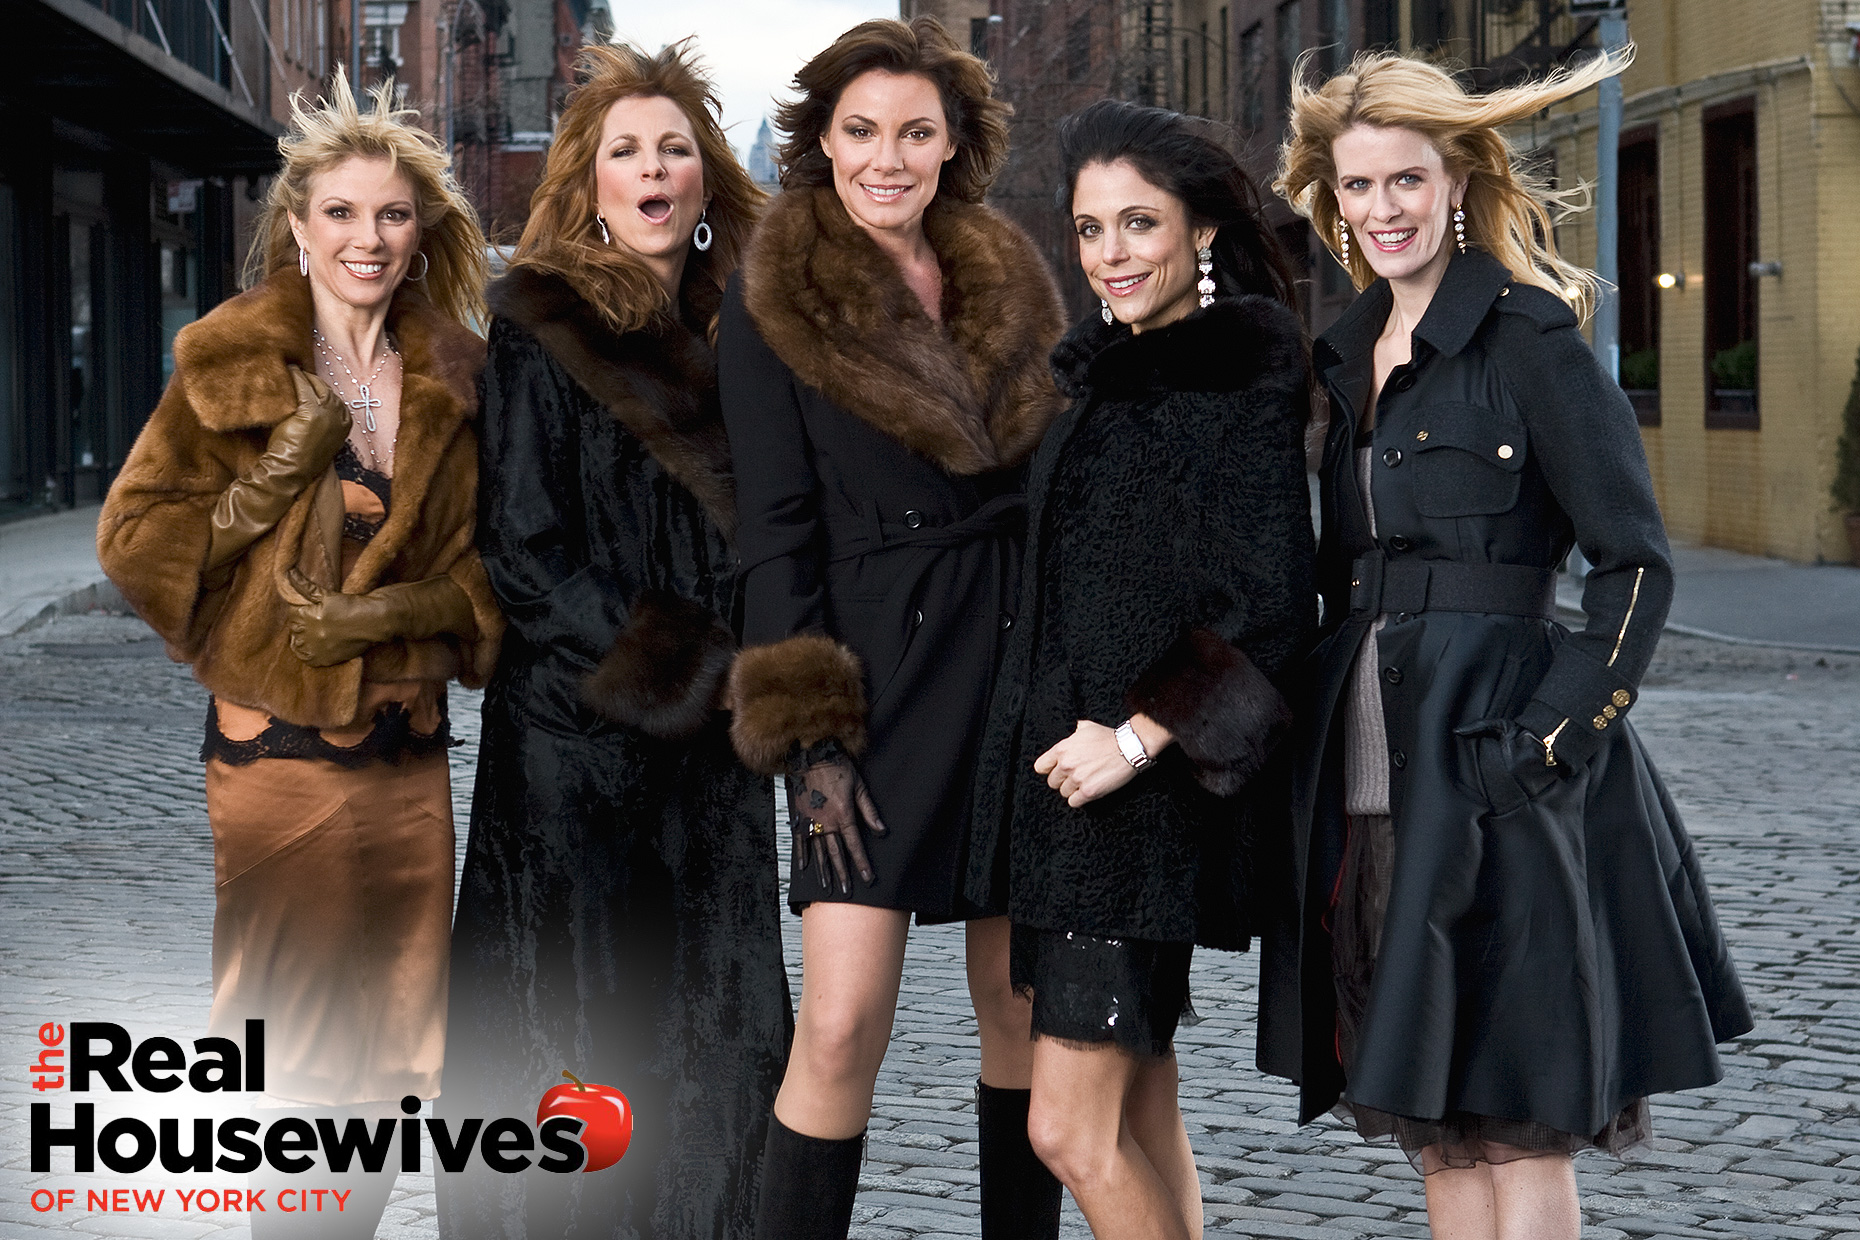 Real-Housewives-of-NYC_0696